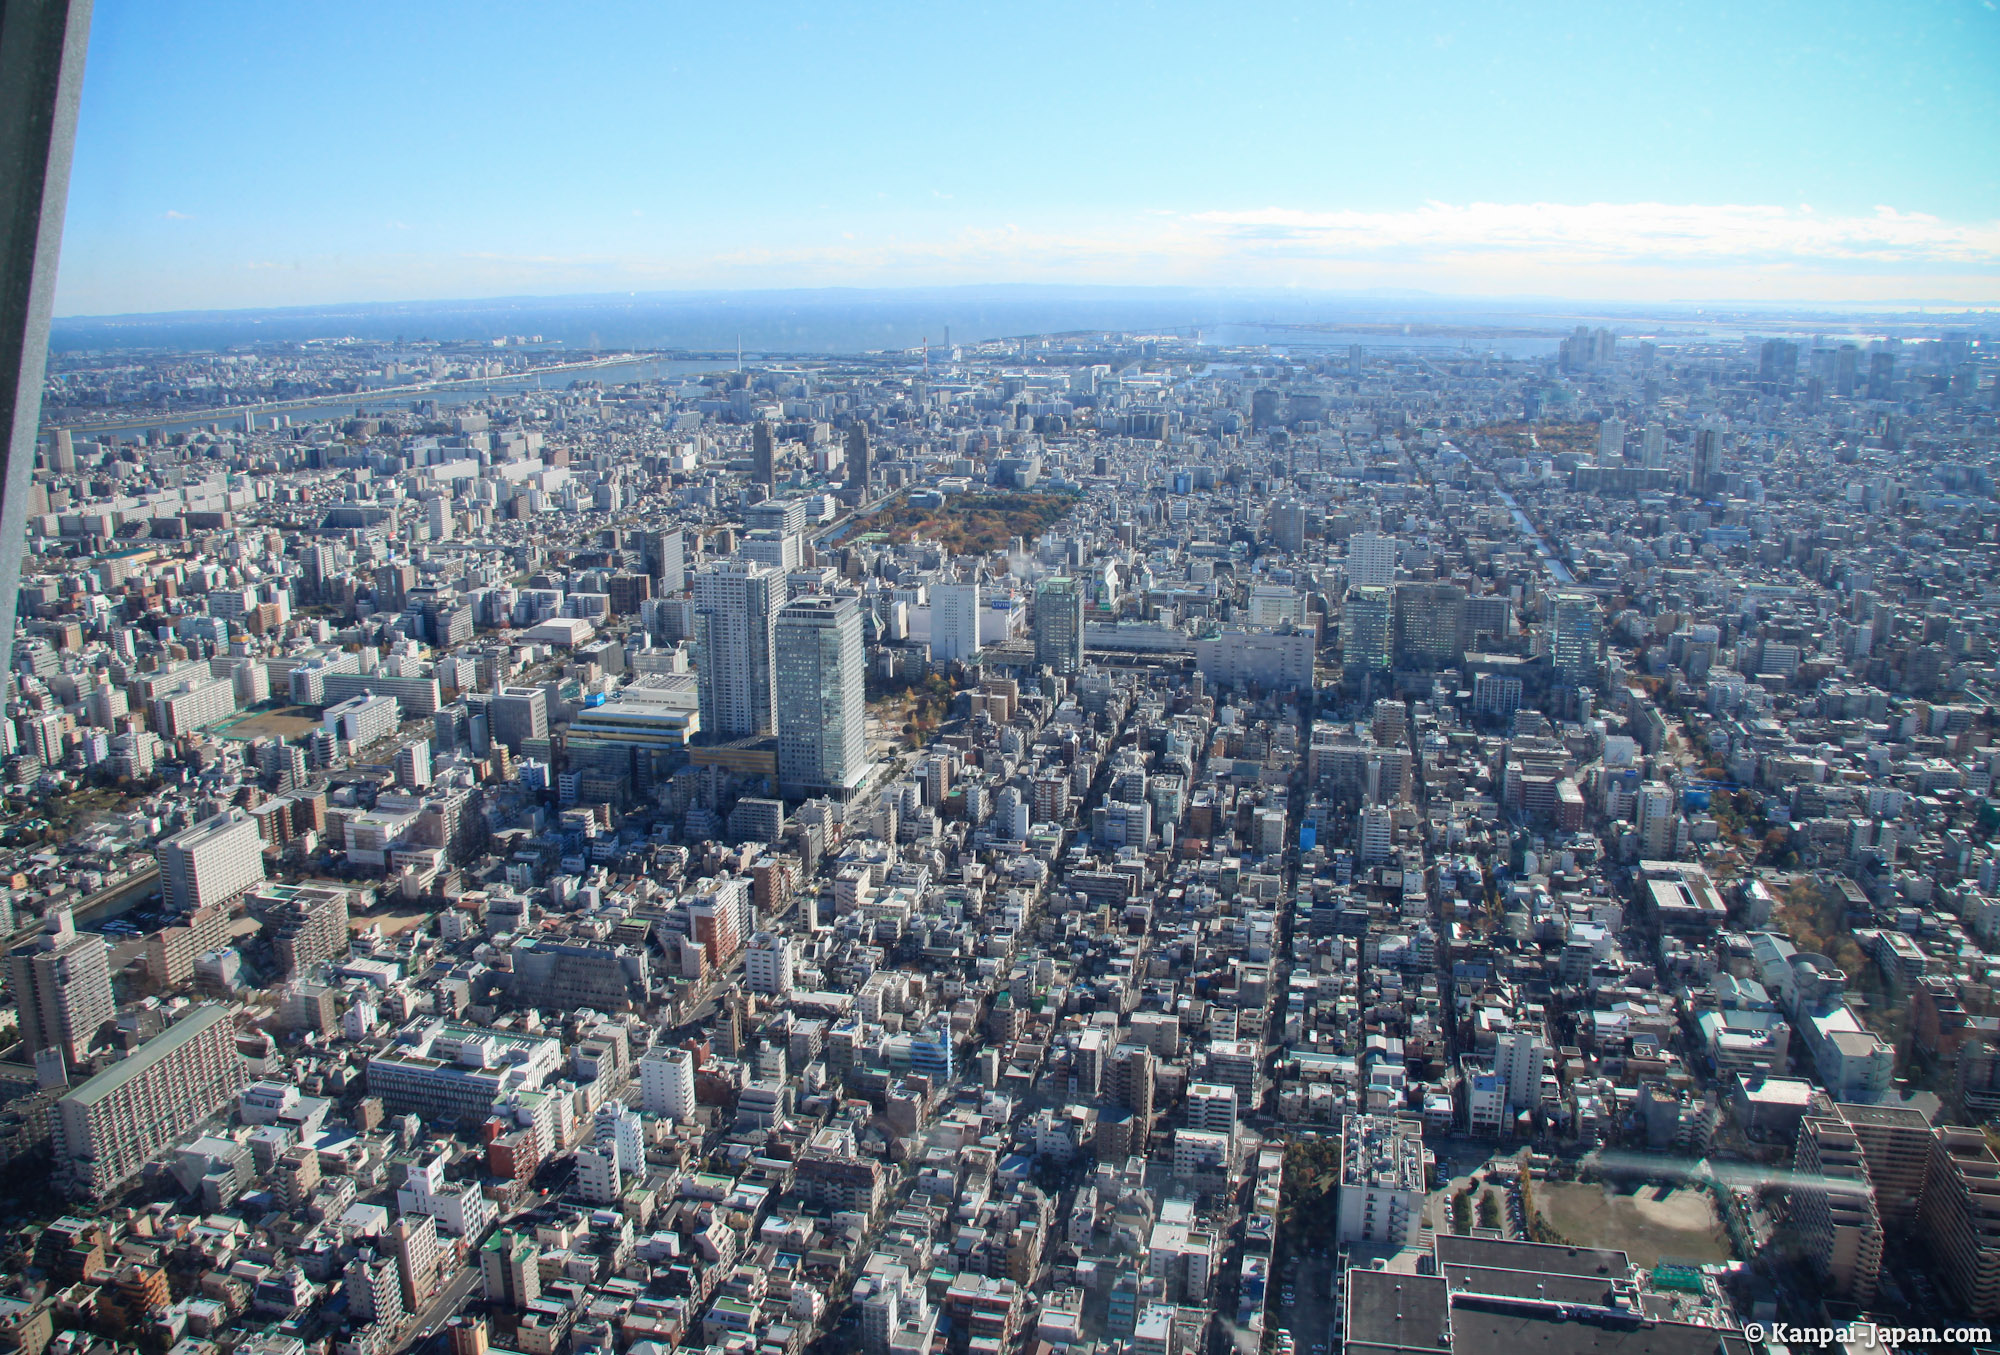 Tokyo Skytree The Highest Tower In Japan